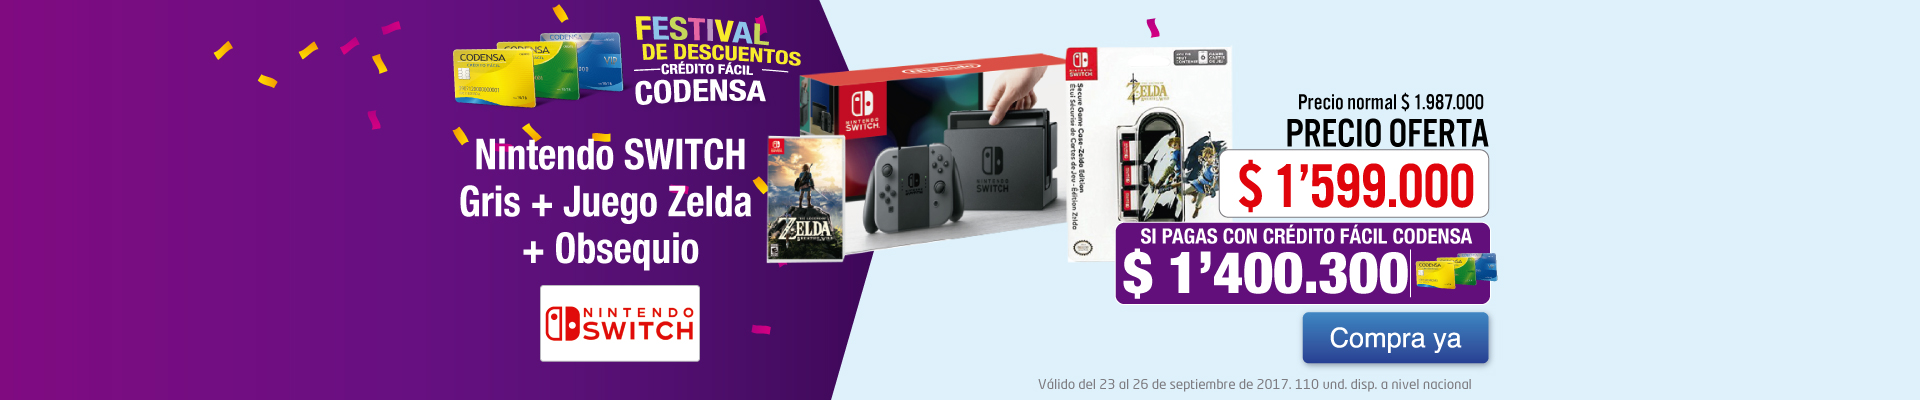 PPAL KT-6-videojuegos-switchobsequio-cat-sept23-26